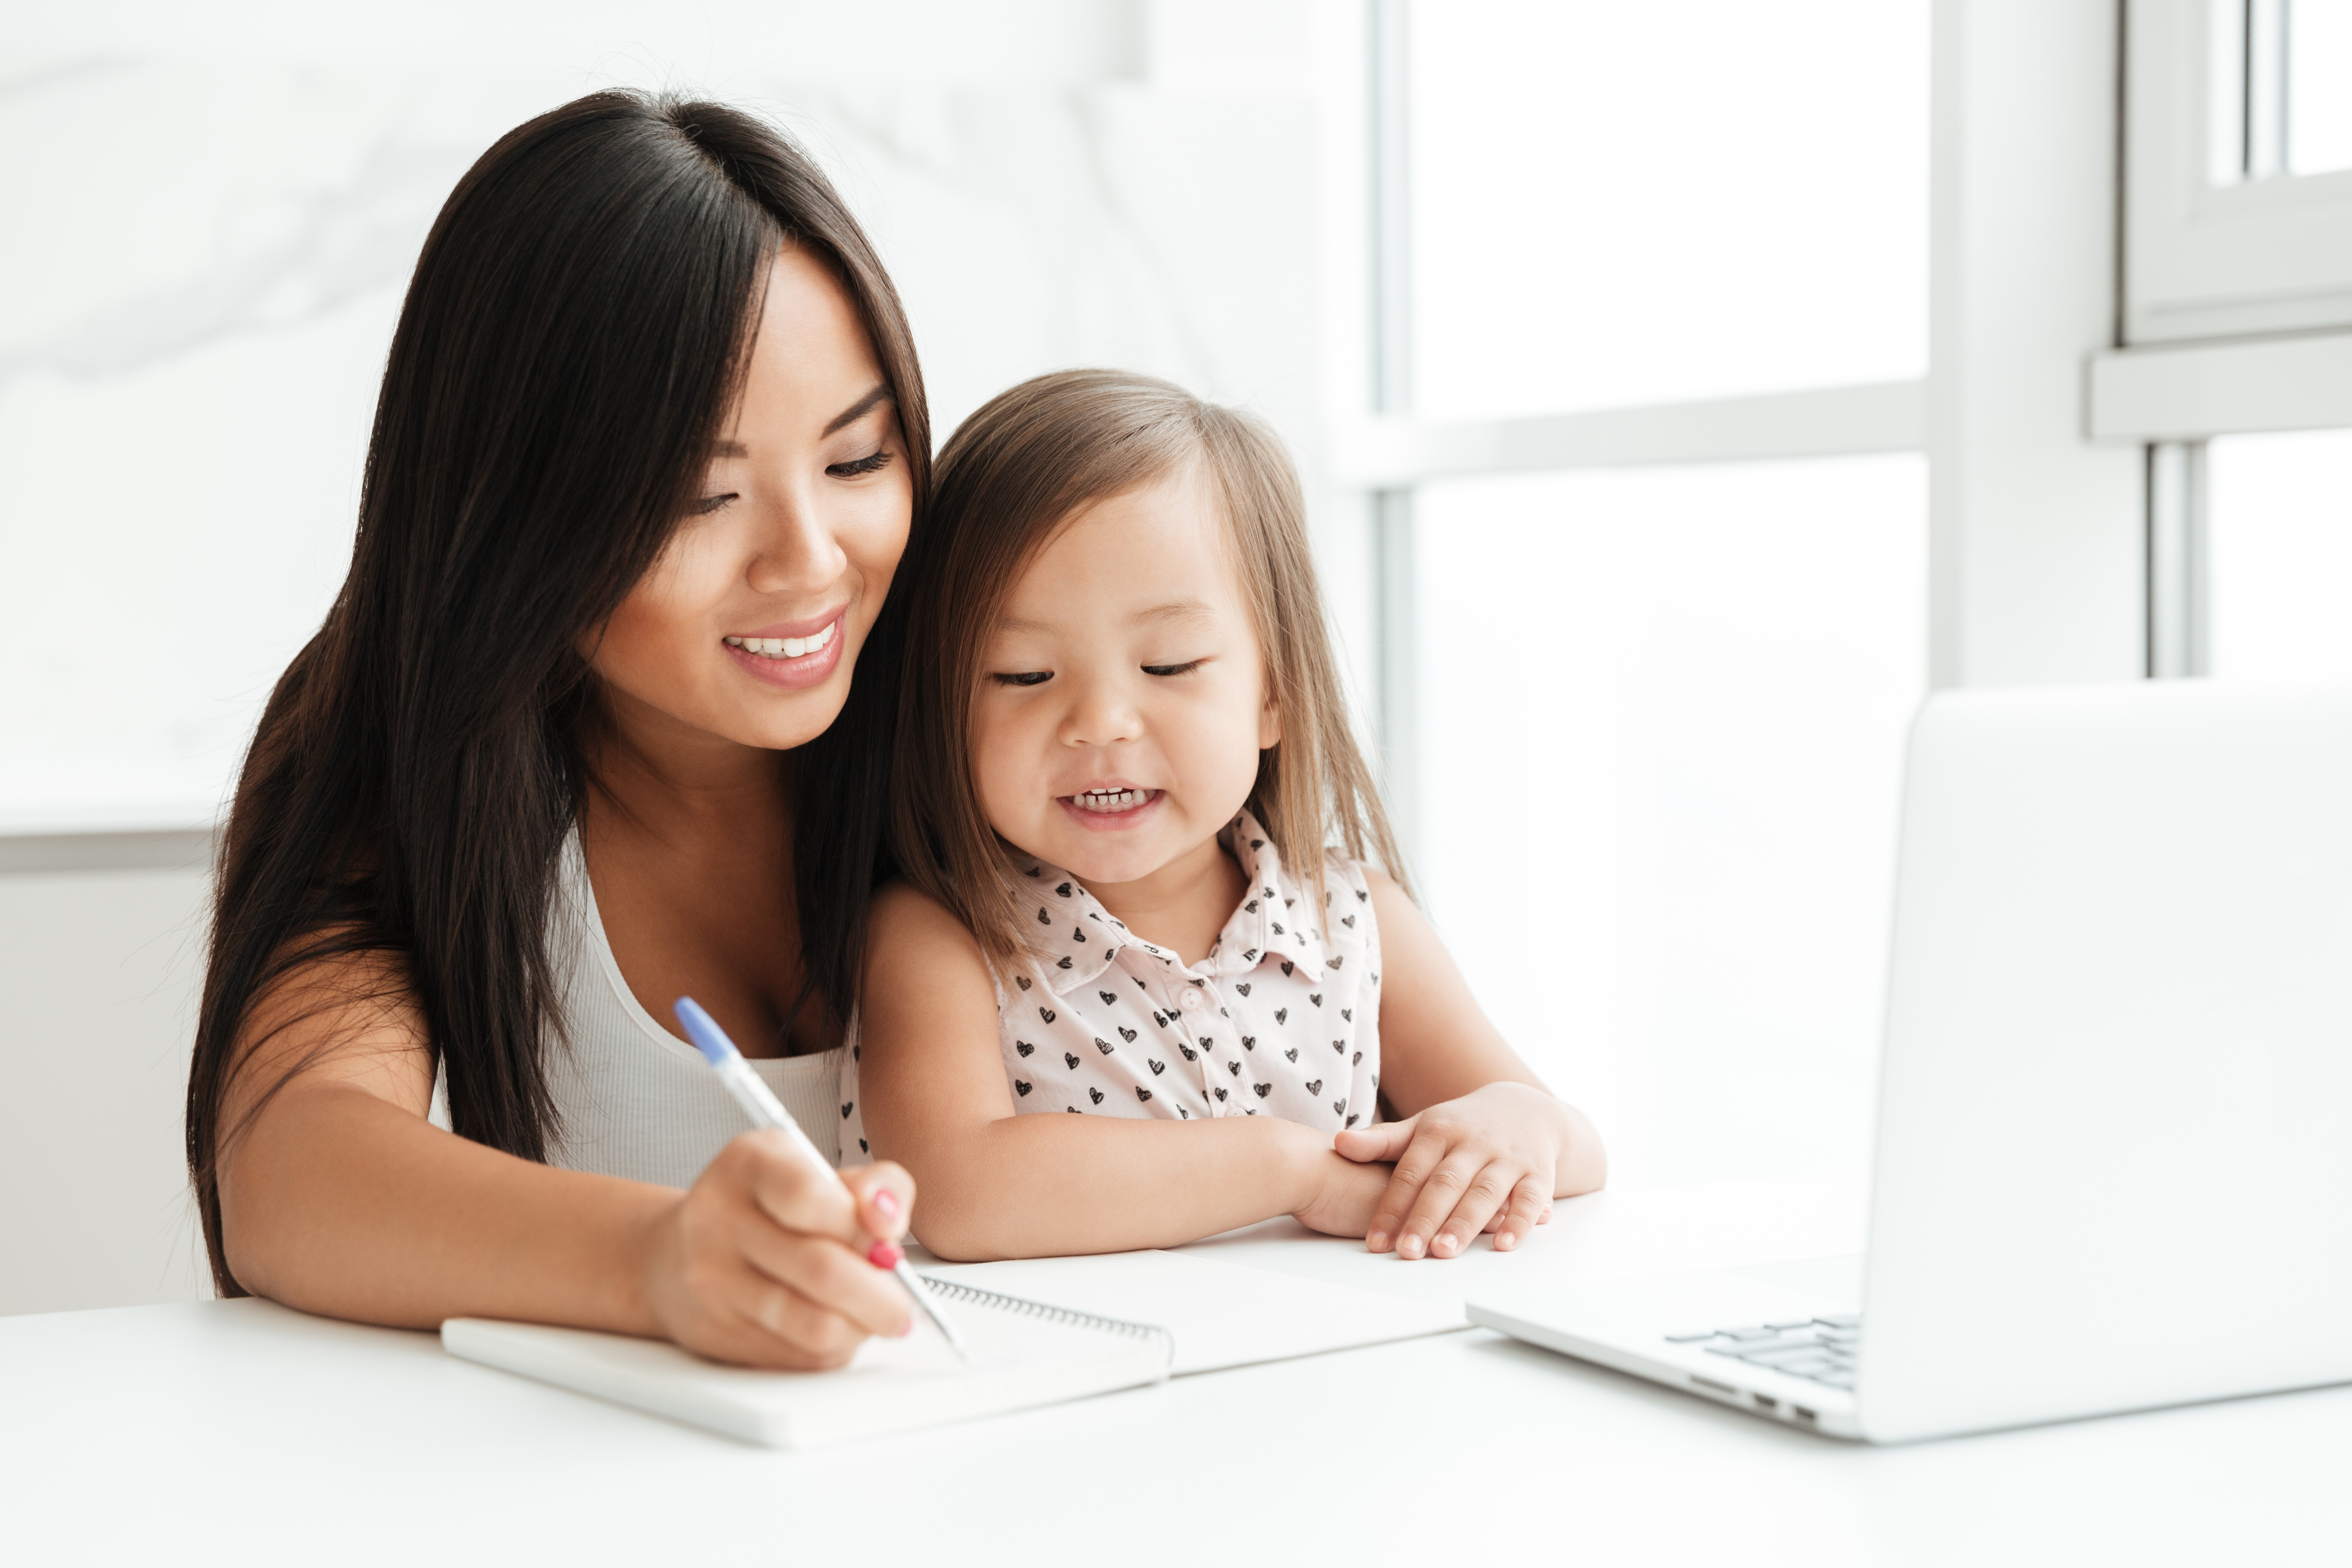 storyblocks-image-of-amazing-young-mom-sitting-at-the-table-with-little-cute-asian-girl-at-home-indoors-using-laptop-computer-writing-notes-to-notebook-looking-aside_H0lMSChT9W